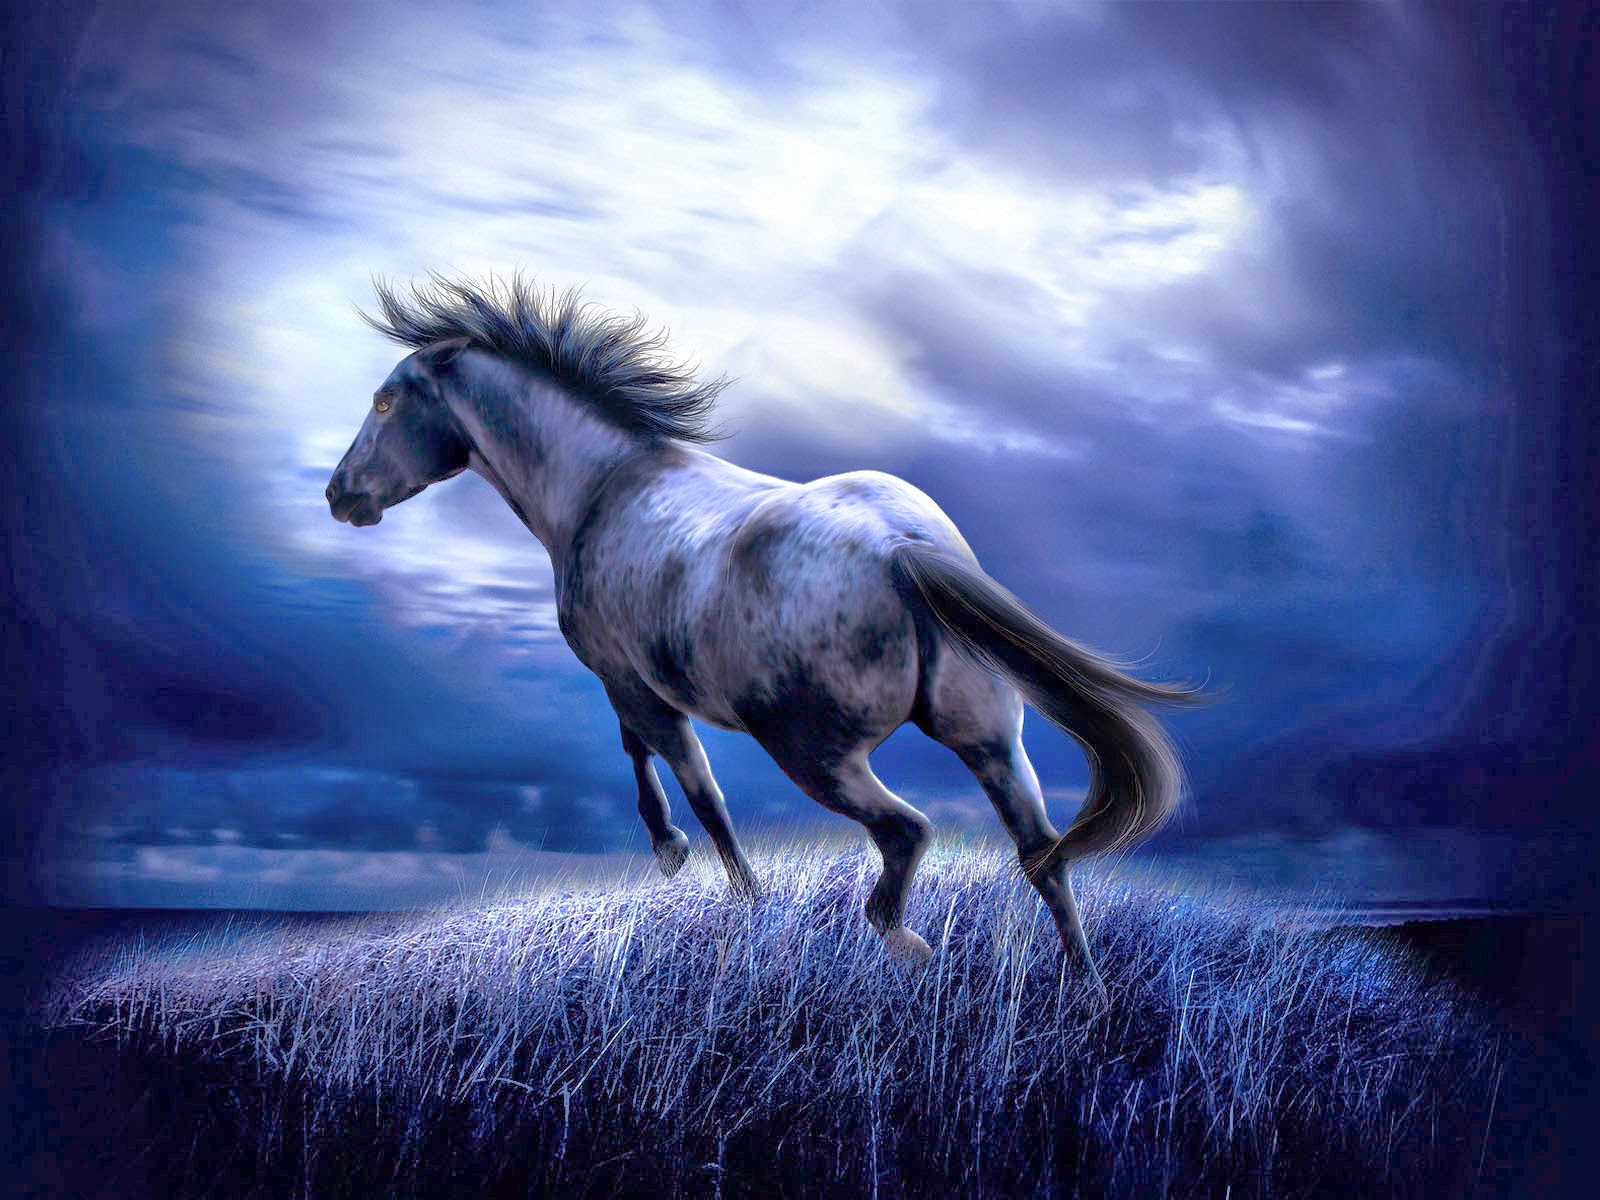 Free 3d Wallpapers Download Horse Wallpapers HD Wallpapers Download Free Images Wallpaper [1000image.com]